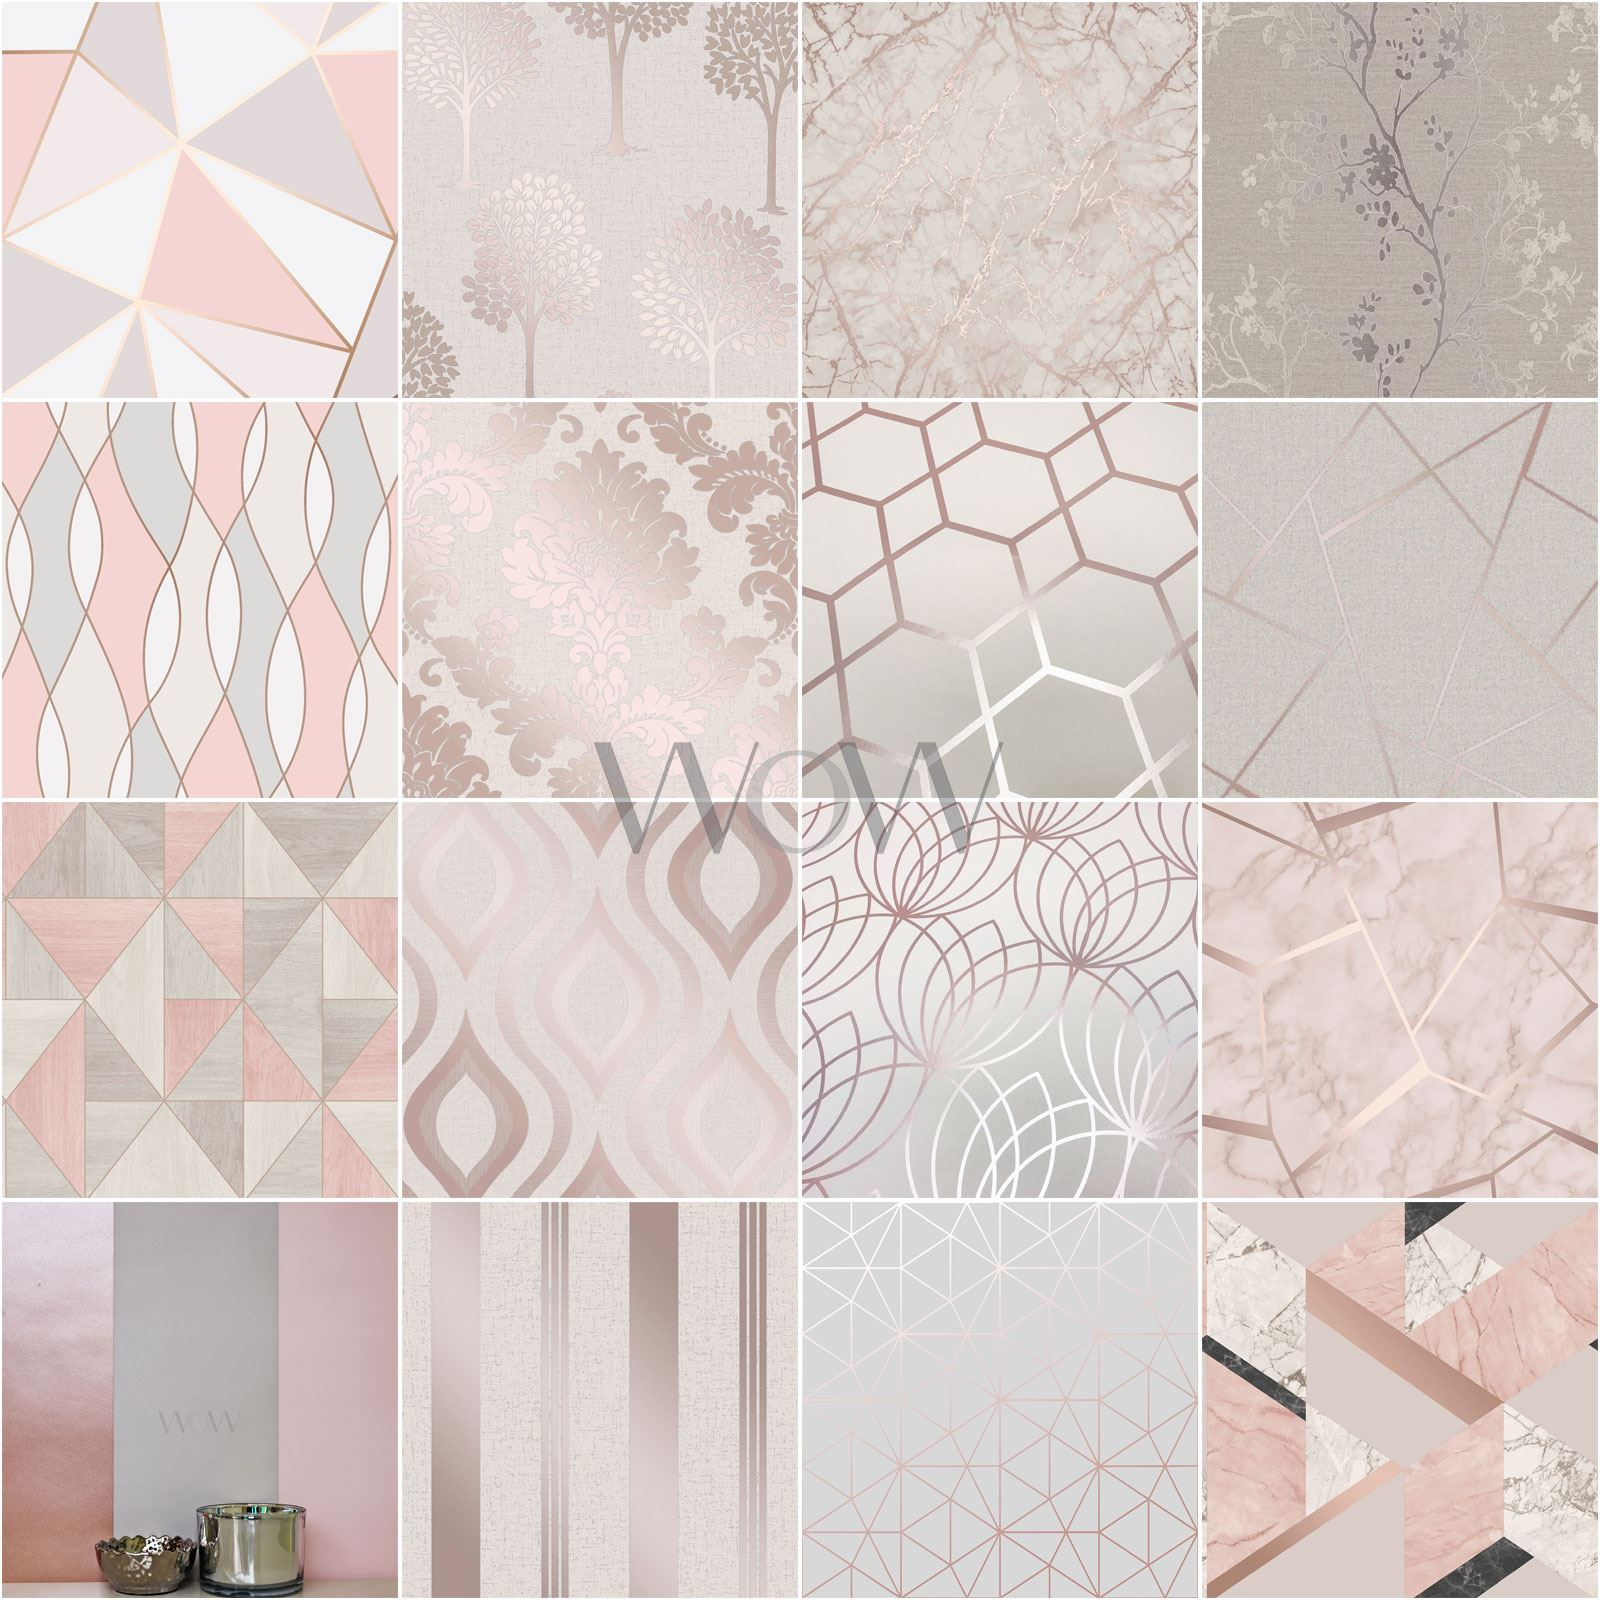 16 Rose Gold And Copper Details For Stylish Interior Decor: ROSE GOLD / PINK GREY BEIGE WALLPAPER STRIPE GEOMETRIC